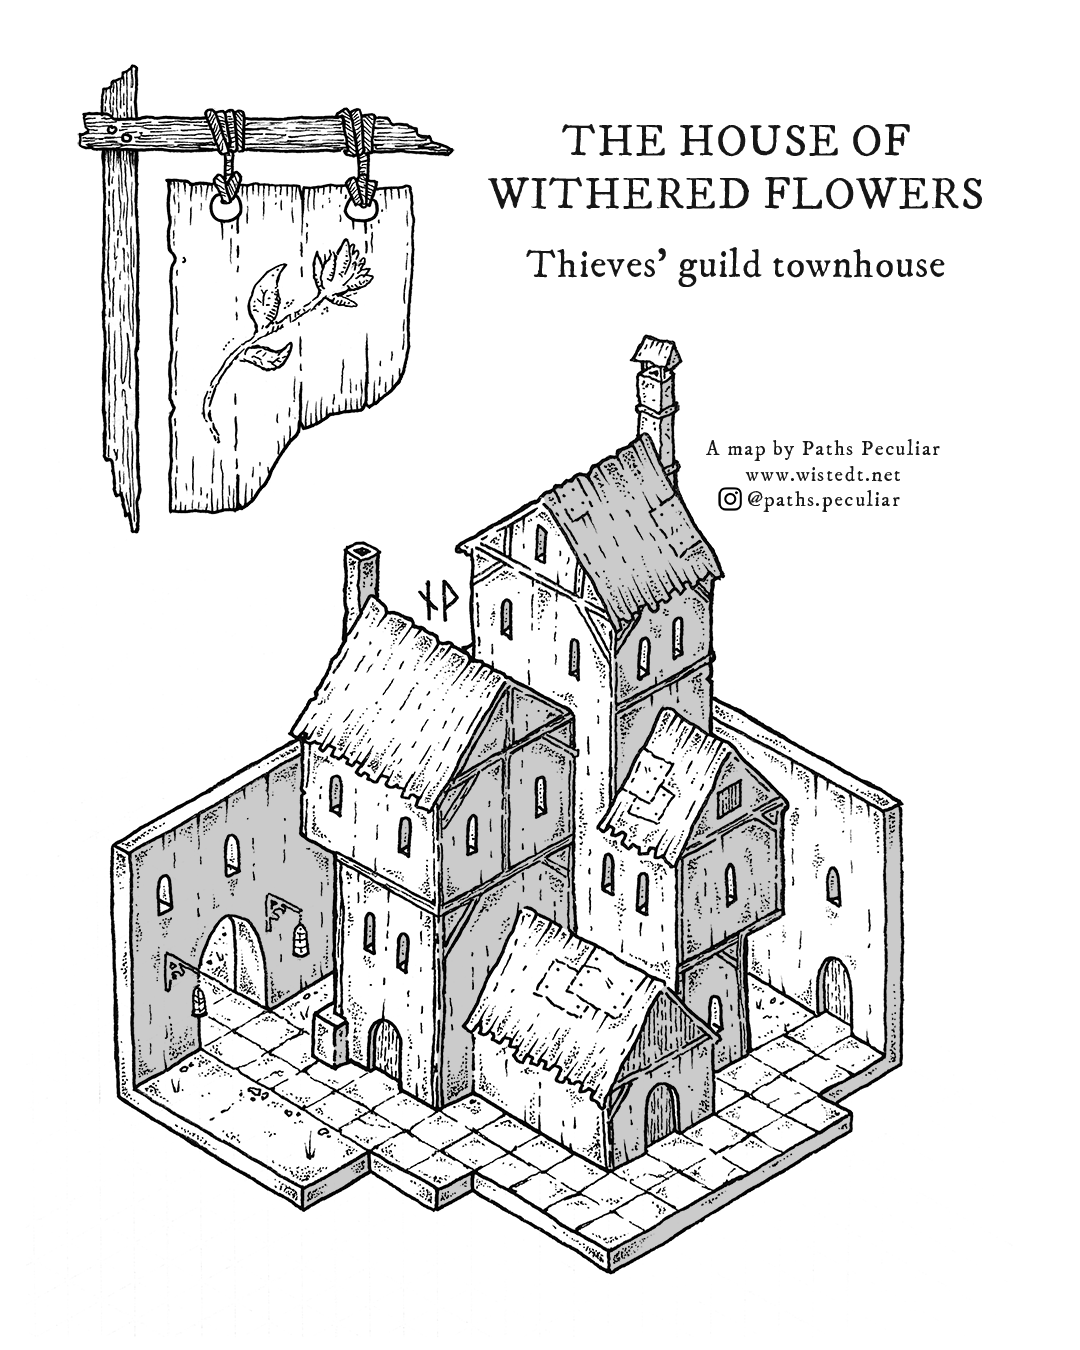 The House of Withered Flowers, thieves' guild townhouse